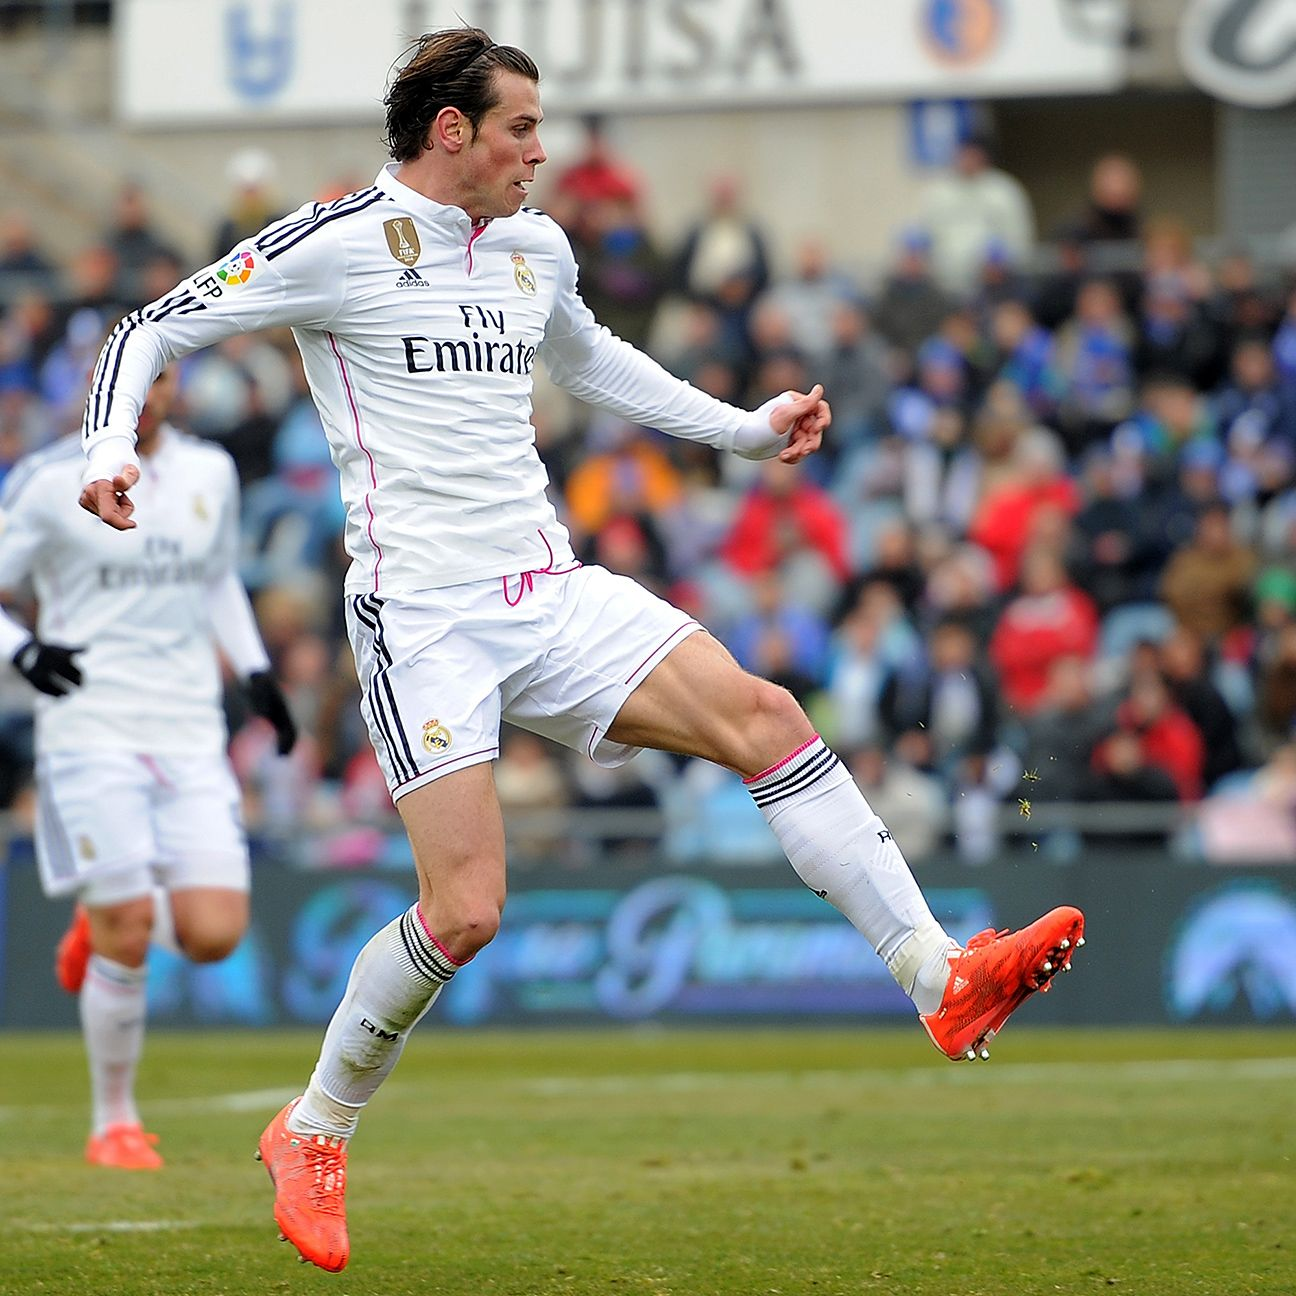 With Ronaldo out, Gareth Bale will take centre stage at the Bernabeu.